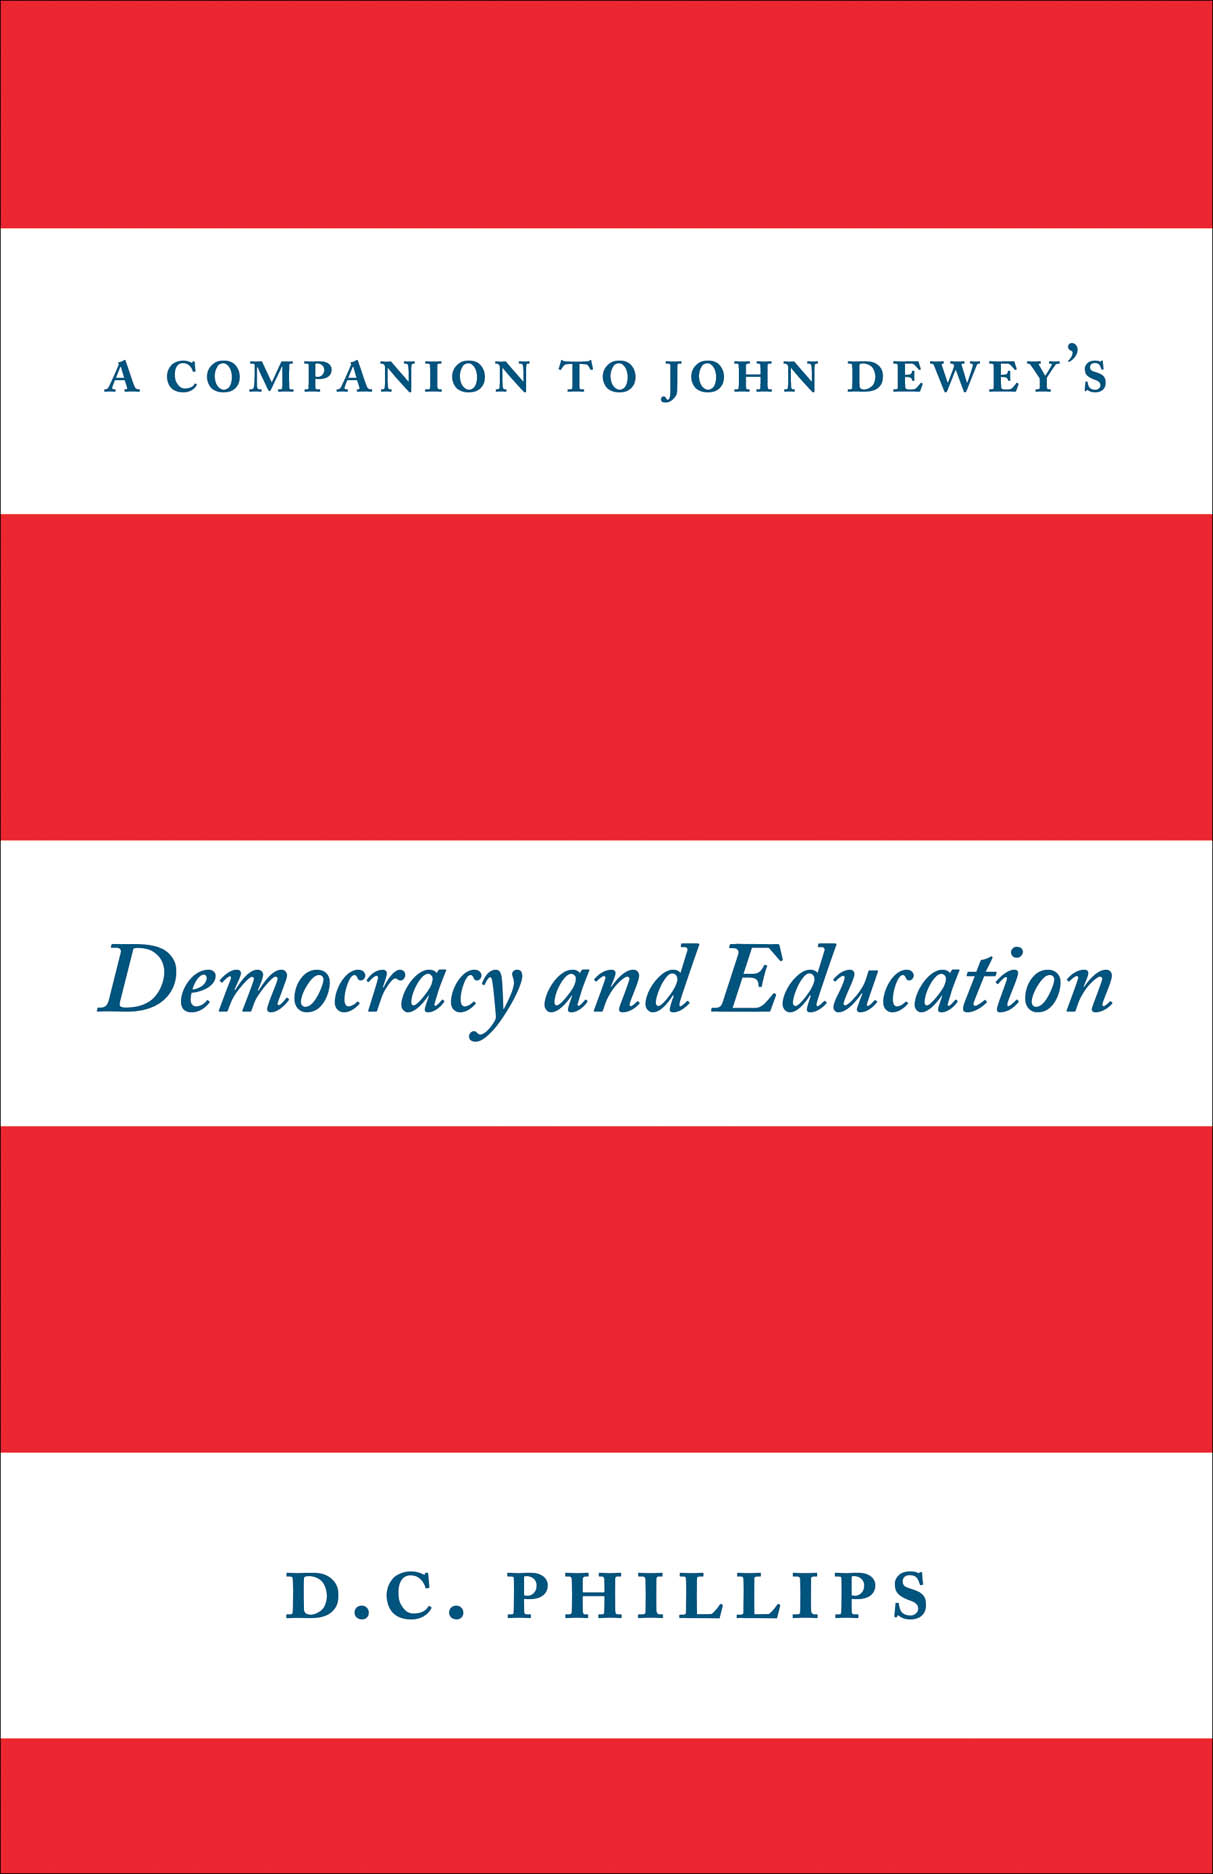 A Companion to John Dewey's